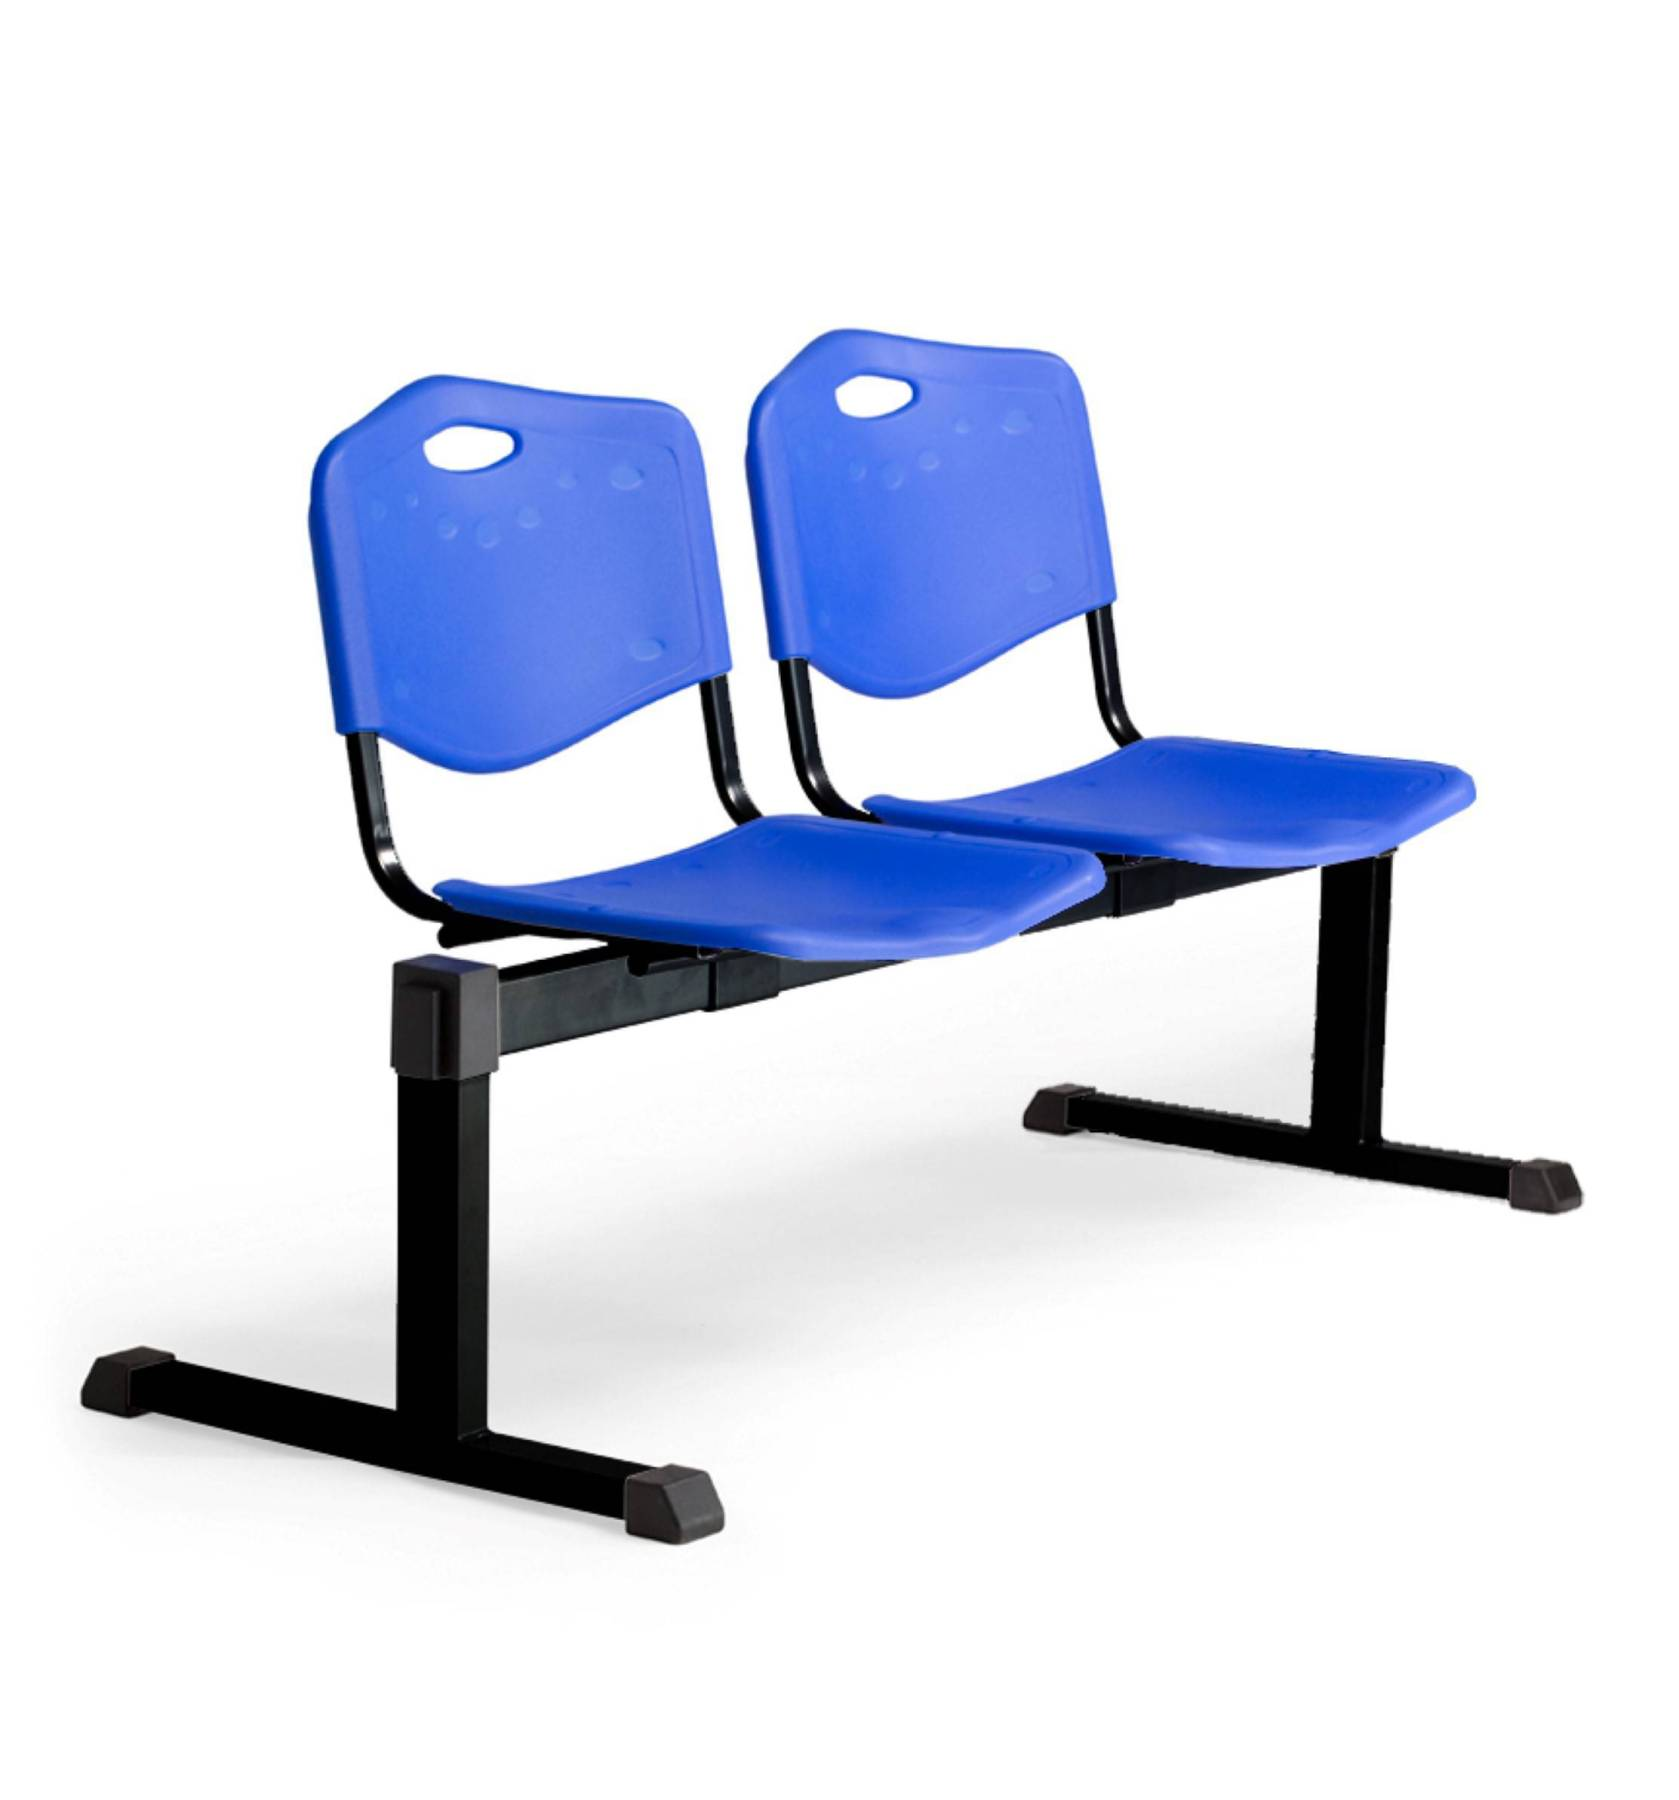 Bench Waiting Two Seater And Iron In Color Black-up Seat And Backstop's Structure In PVC Color Blue Taphole And